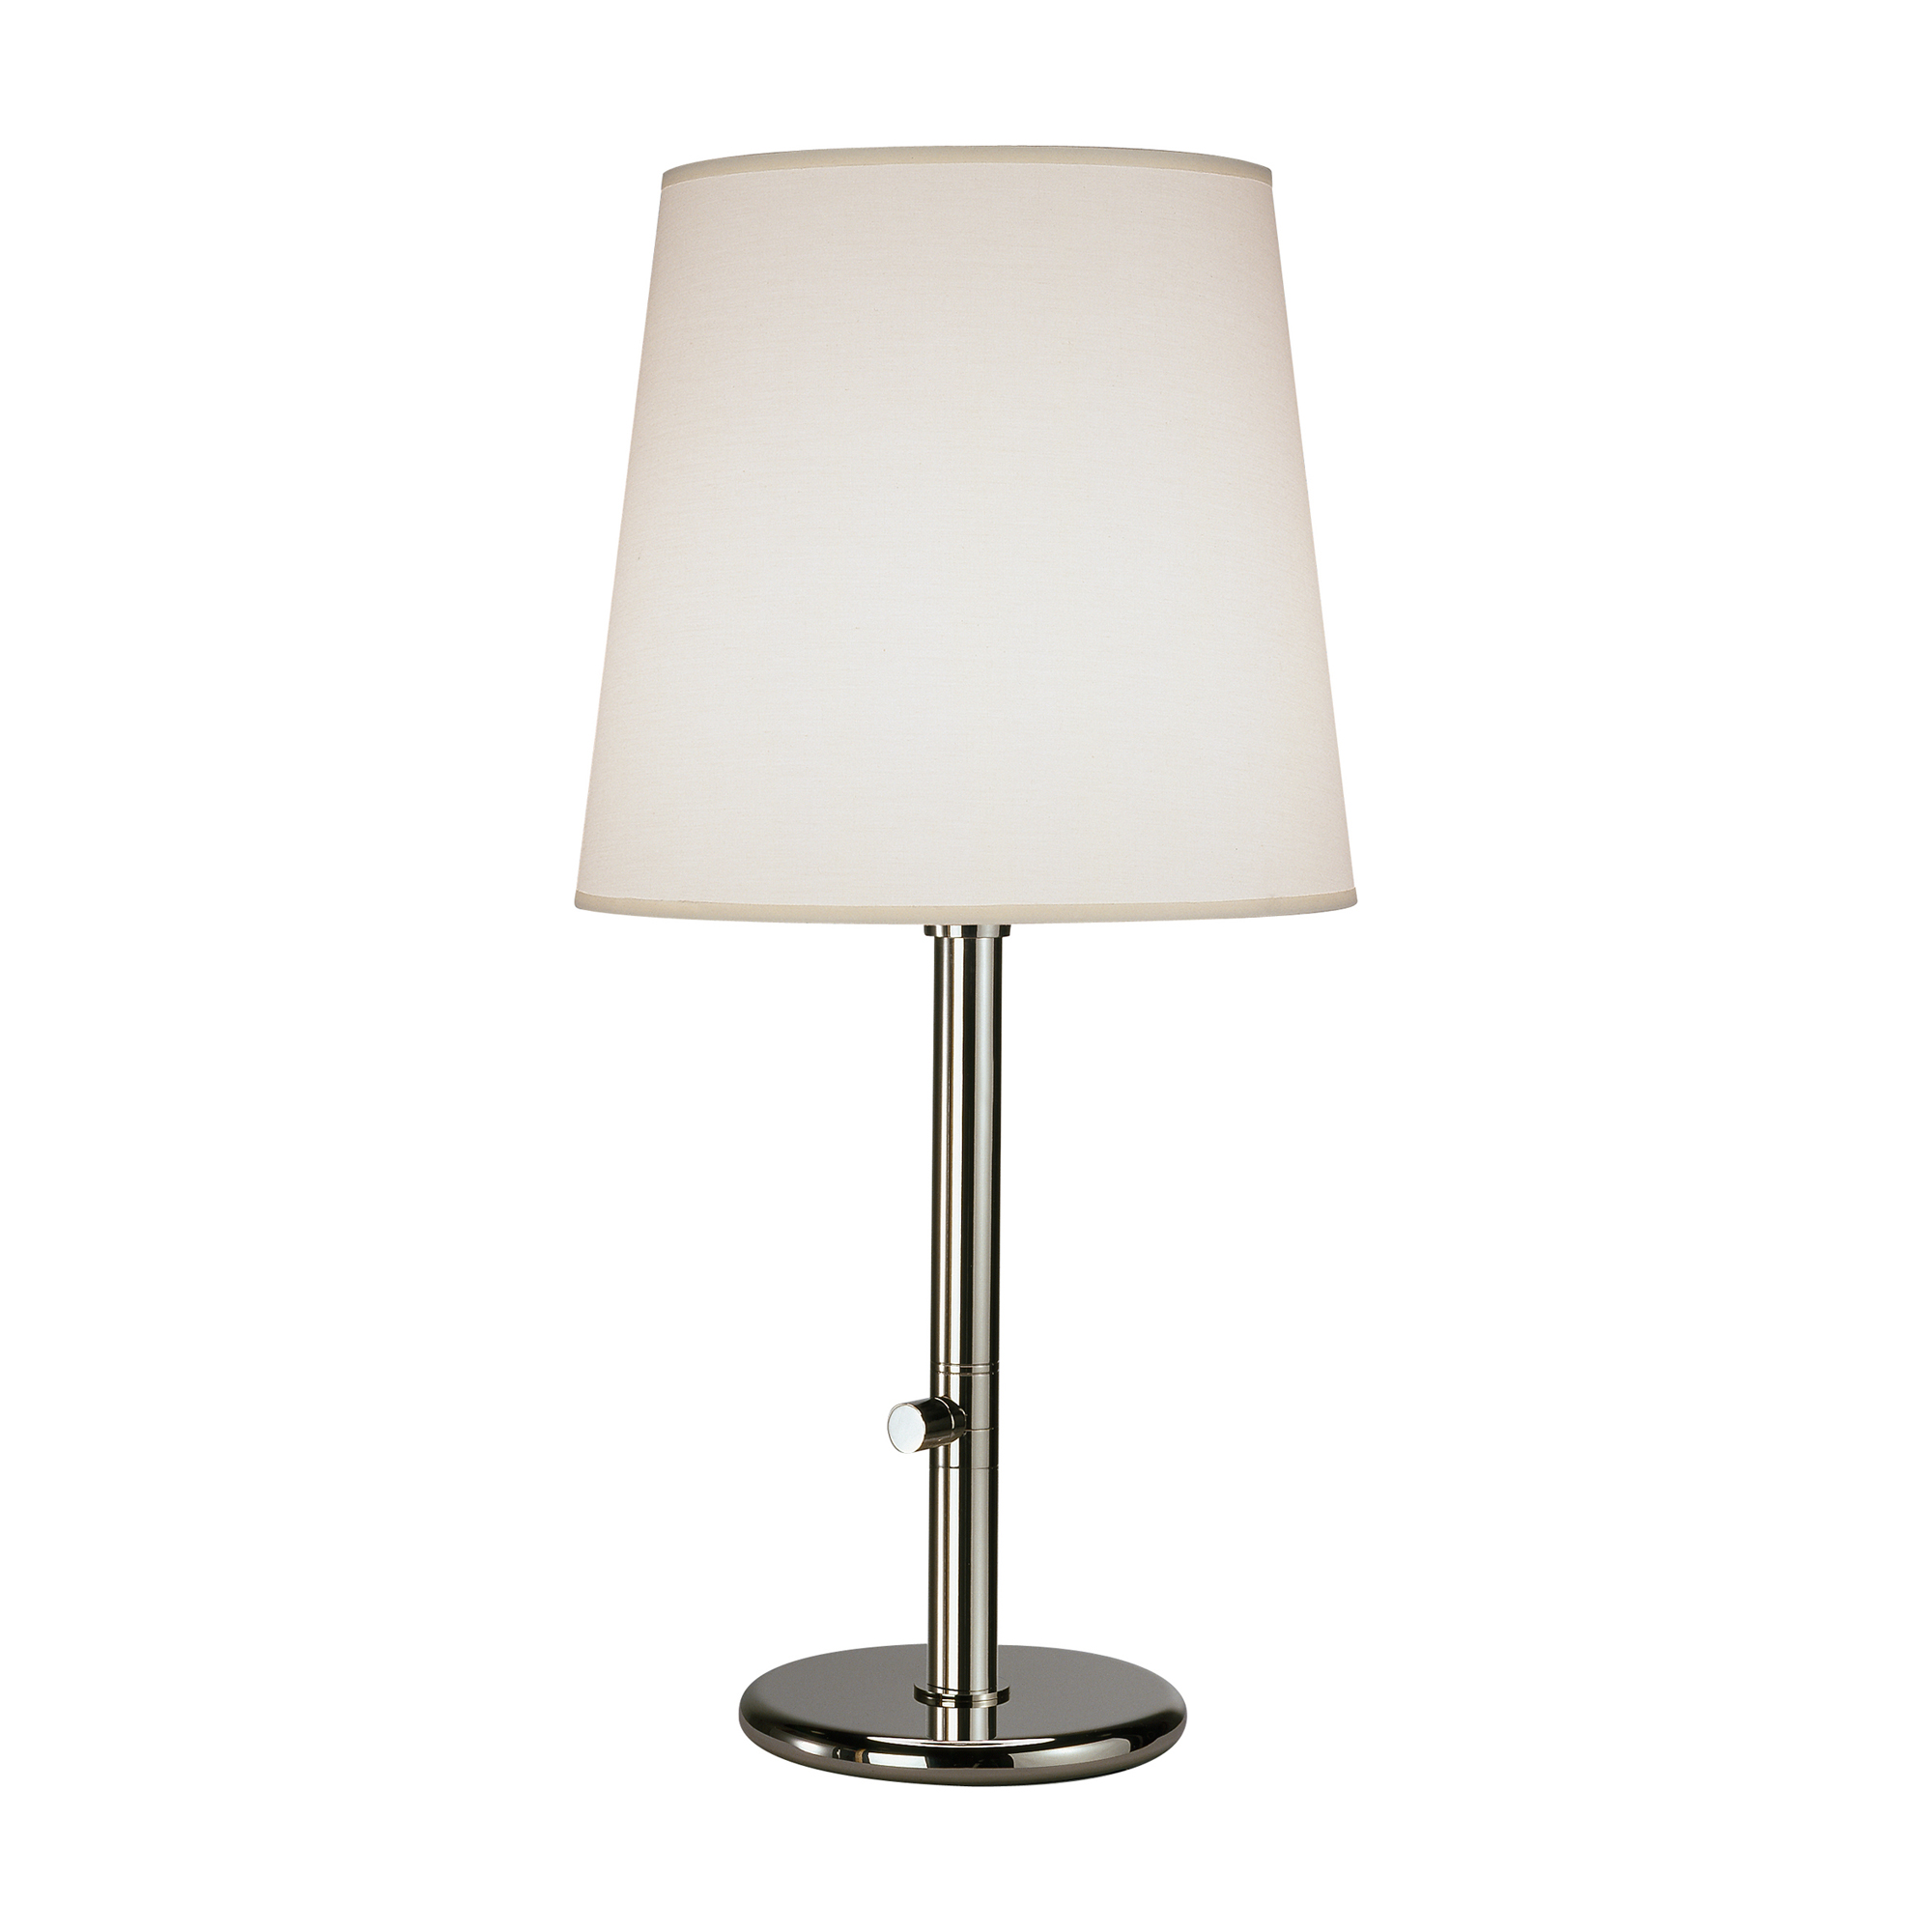 Rico Espinet Buster Chica Accent Lamp Style #2082W